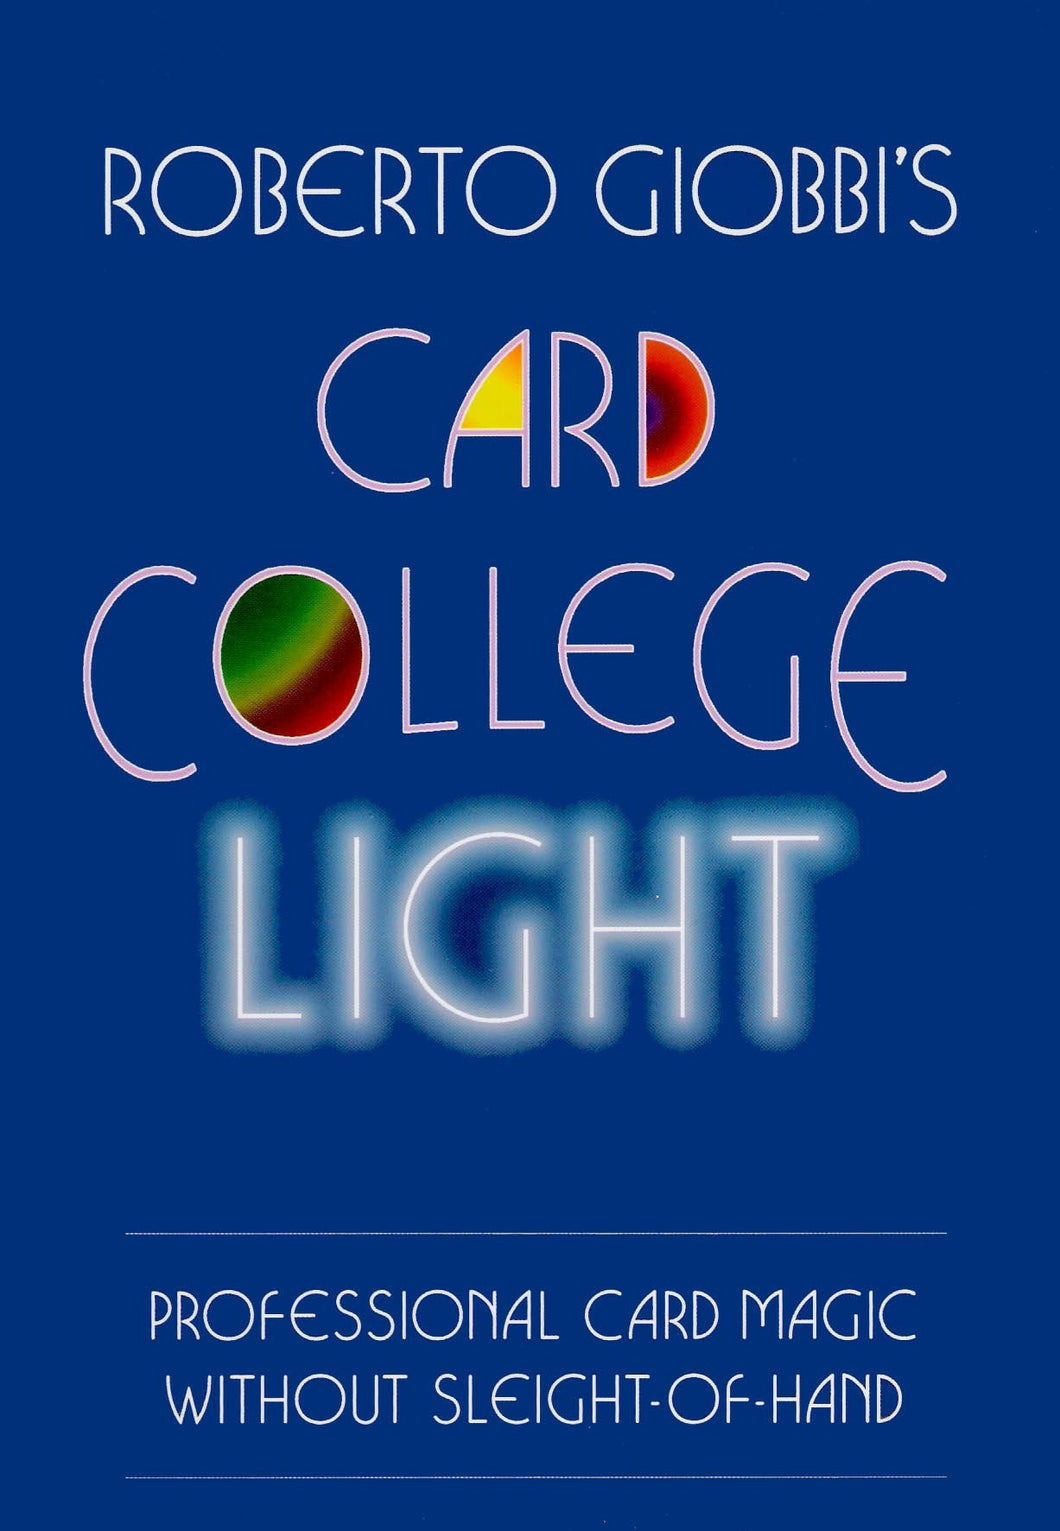 Card College Light - Book